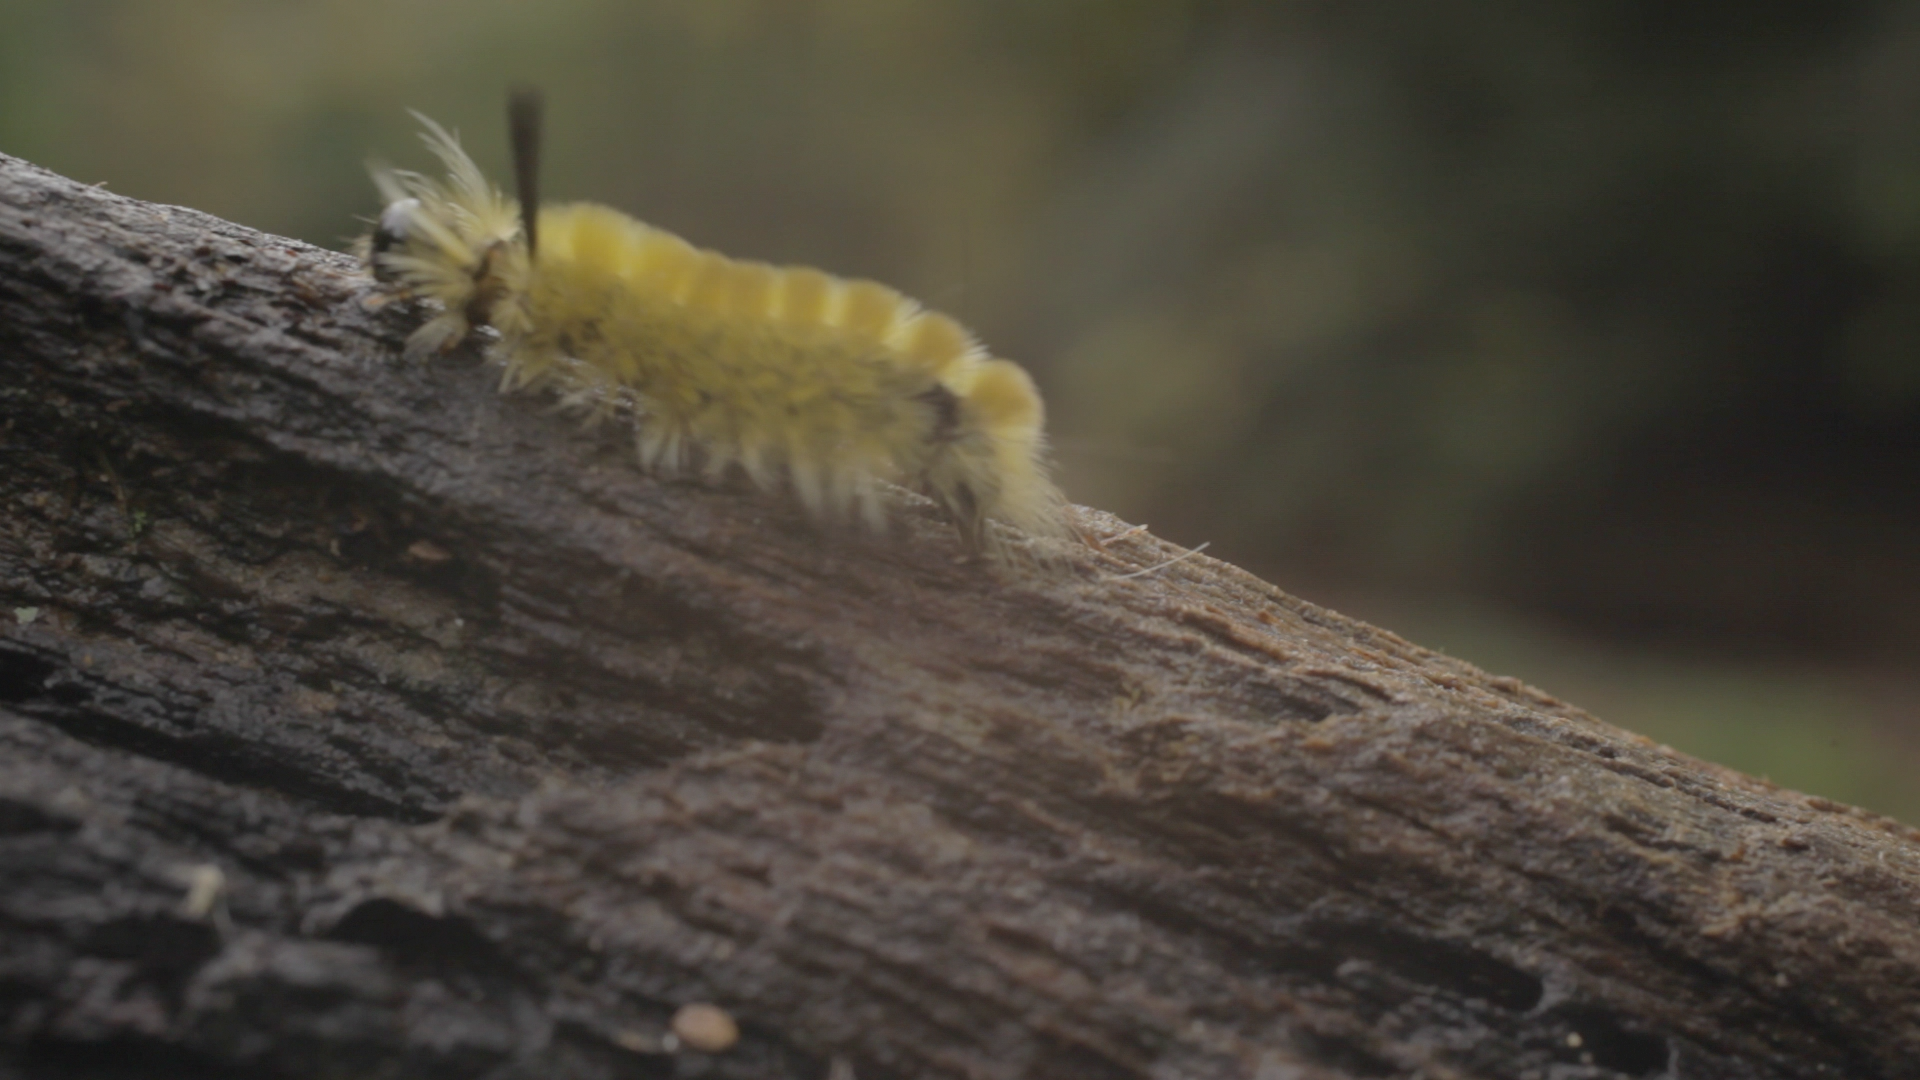 A wooly worm treks across a log during shooting in Muir Valley for the 'Muir Valley Project'. This is a screen grab of one of the many shots we got during our second weekend of production.